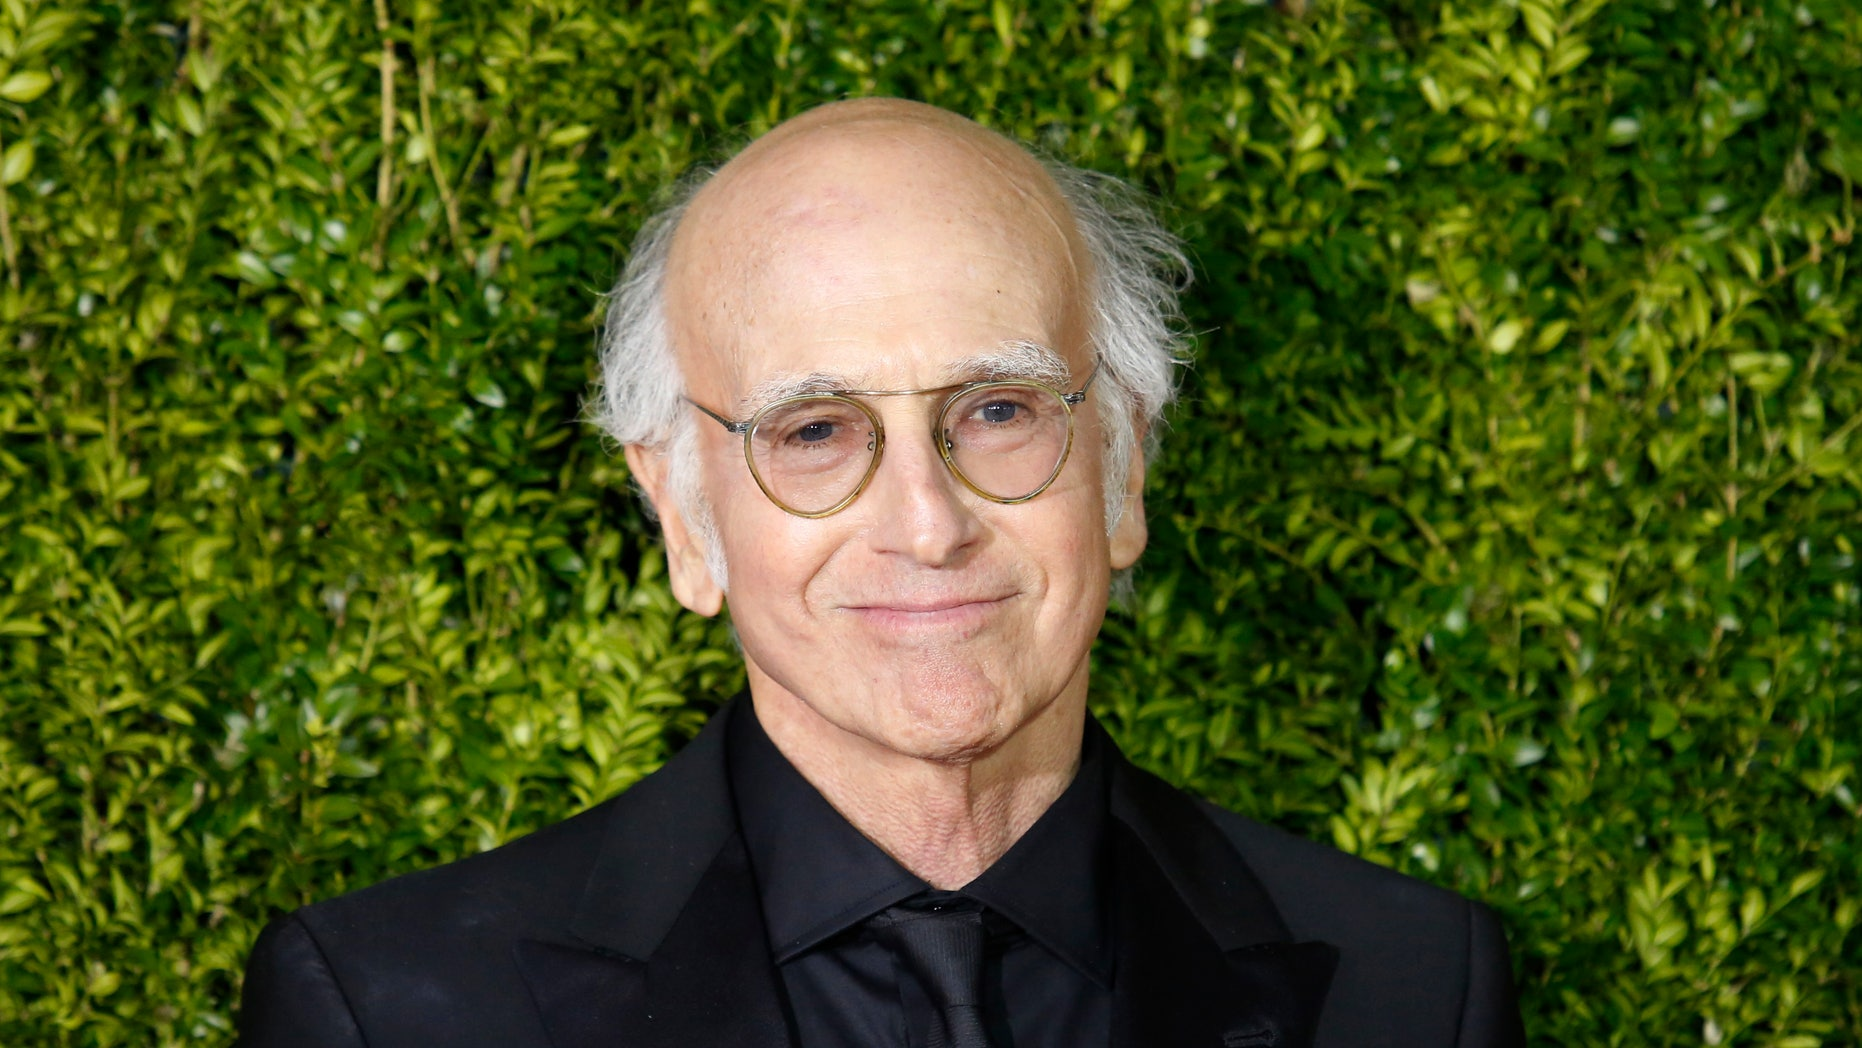 Actor and screenwriter Larry David arrives for the American Theatre Wing's 69th Annual Tony Awards at the Radio City Music Hall in Manhattan, New York June 7, 2015.  REUTERS/Eduardo Munoz - RTX1FK7A